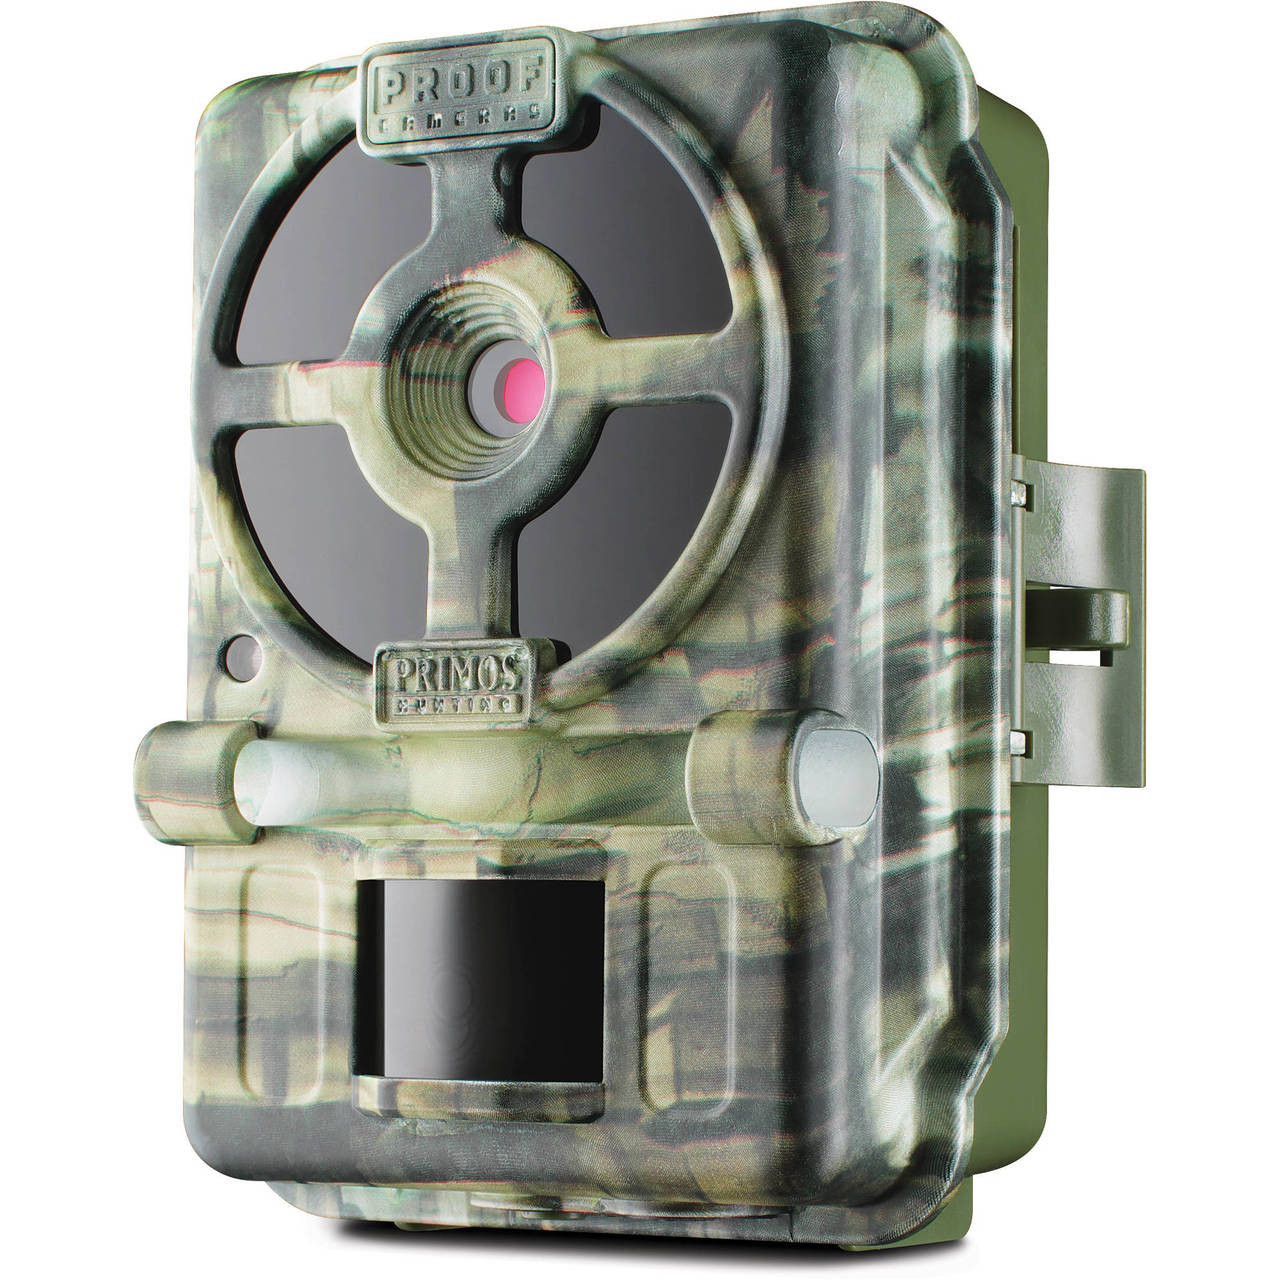 Primos Hunting 12MP Proof Cam 03, 12MP, Low Glow 63056